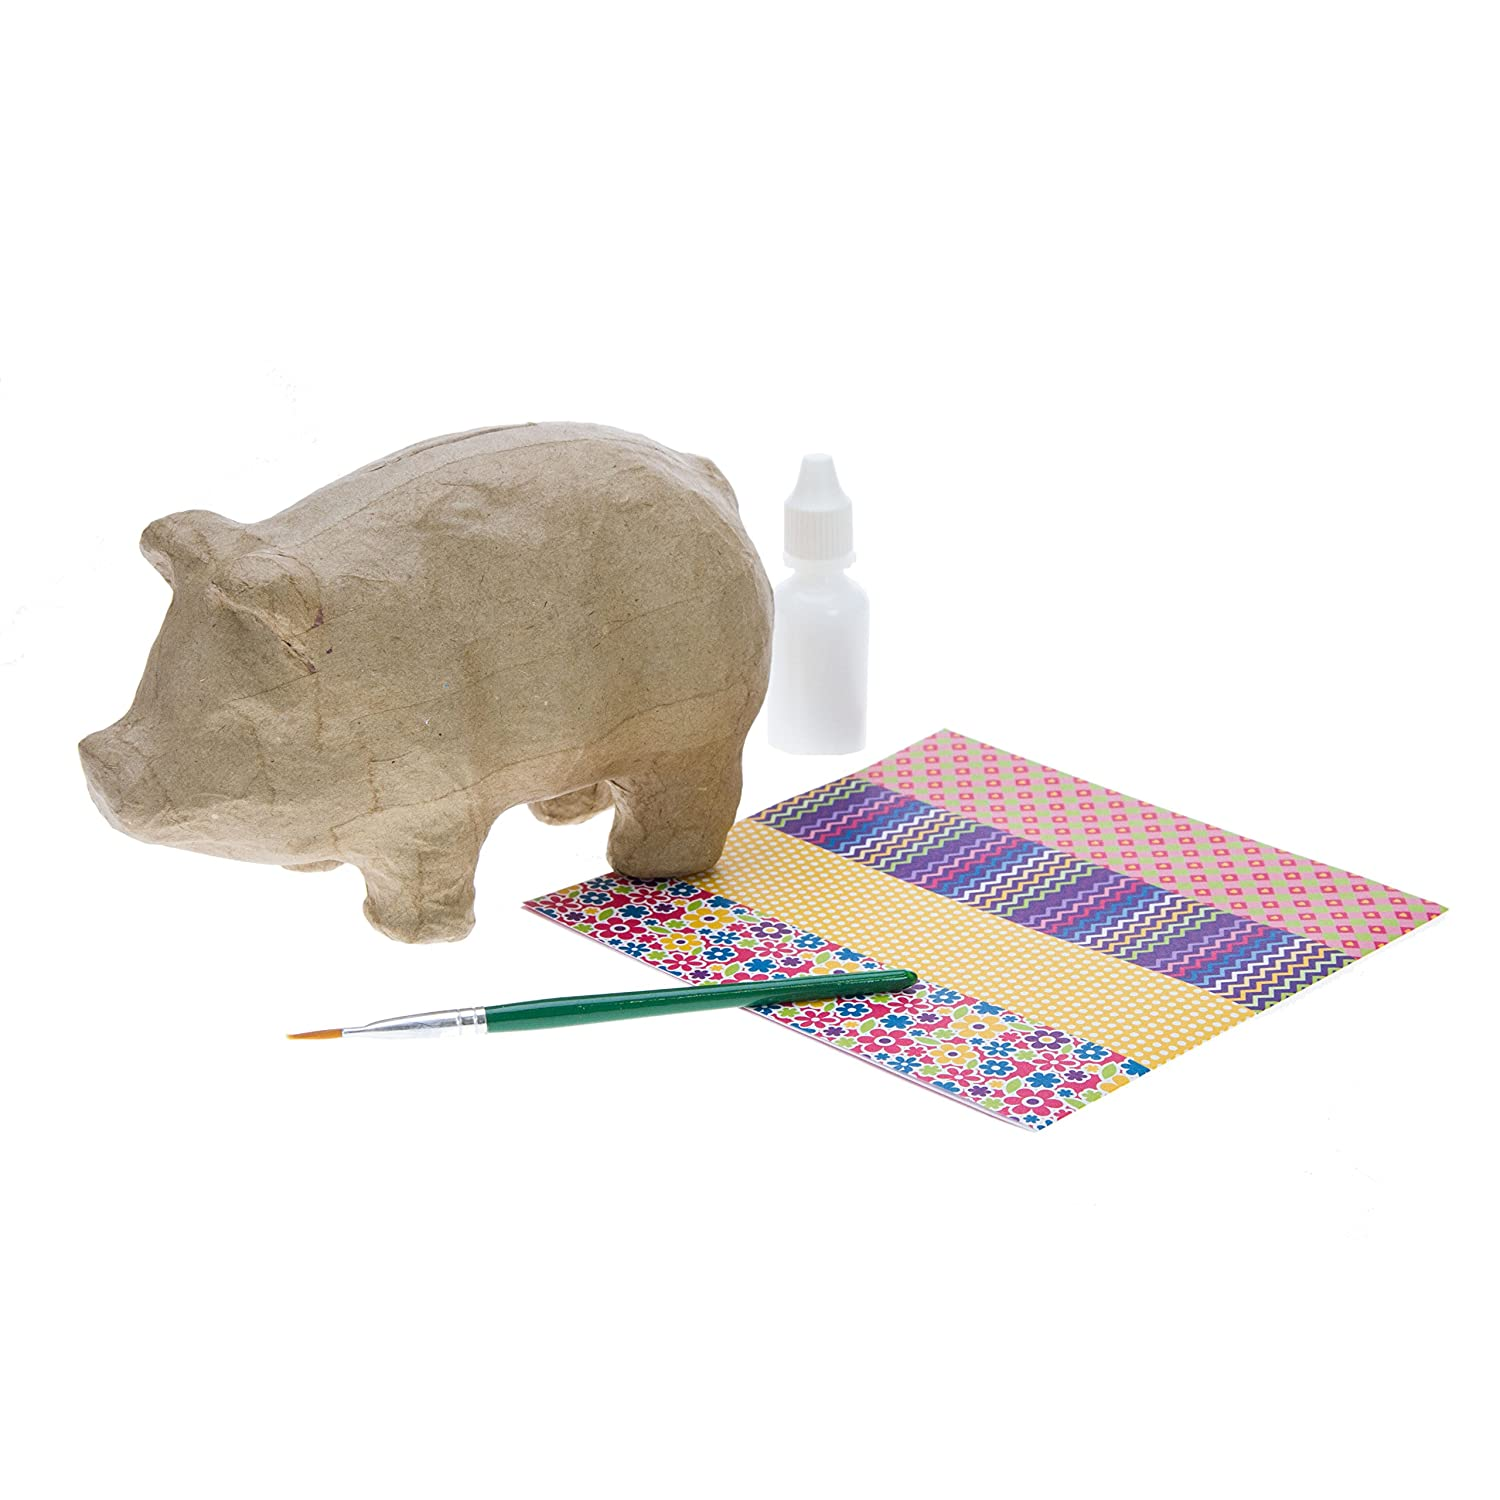 Decoupage Piggy Bank Kit House of Crafts